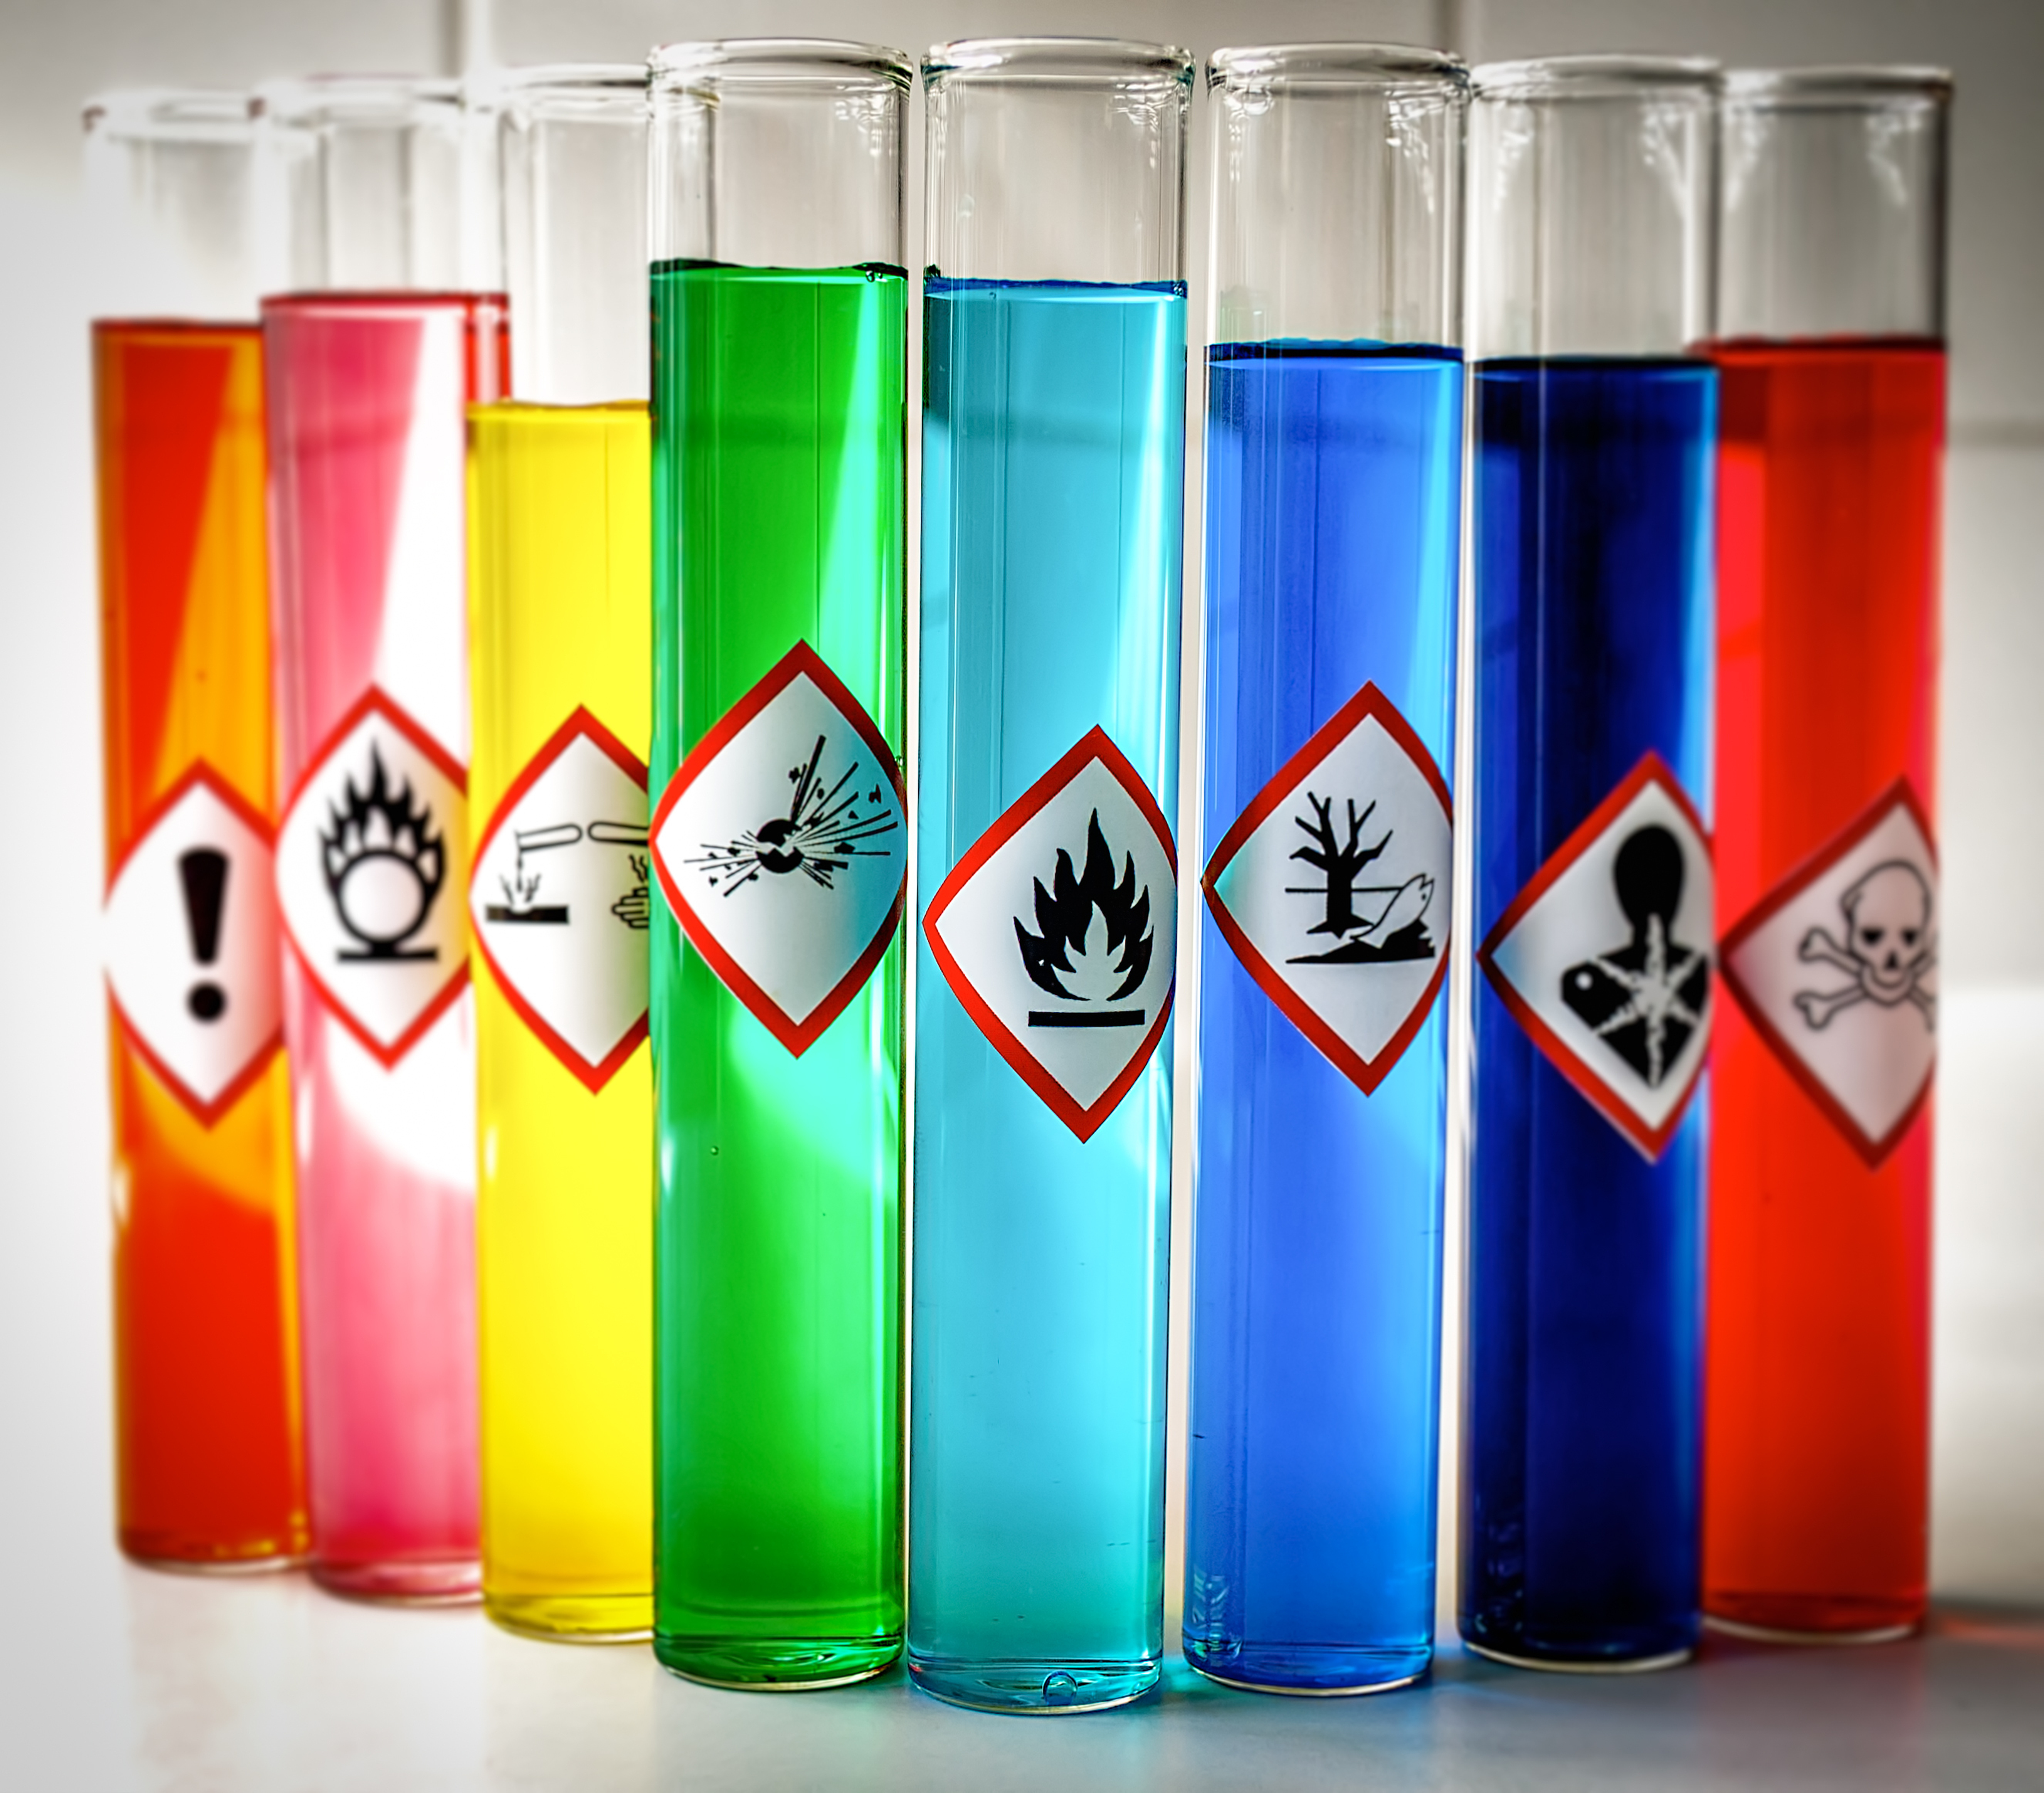 GHS pictograms on colorful liquids in test tubes_418194448